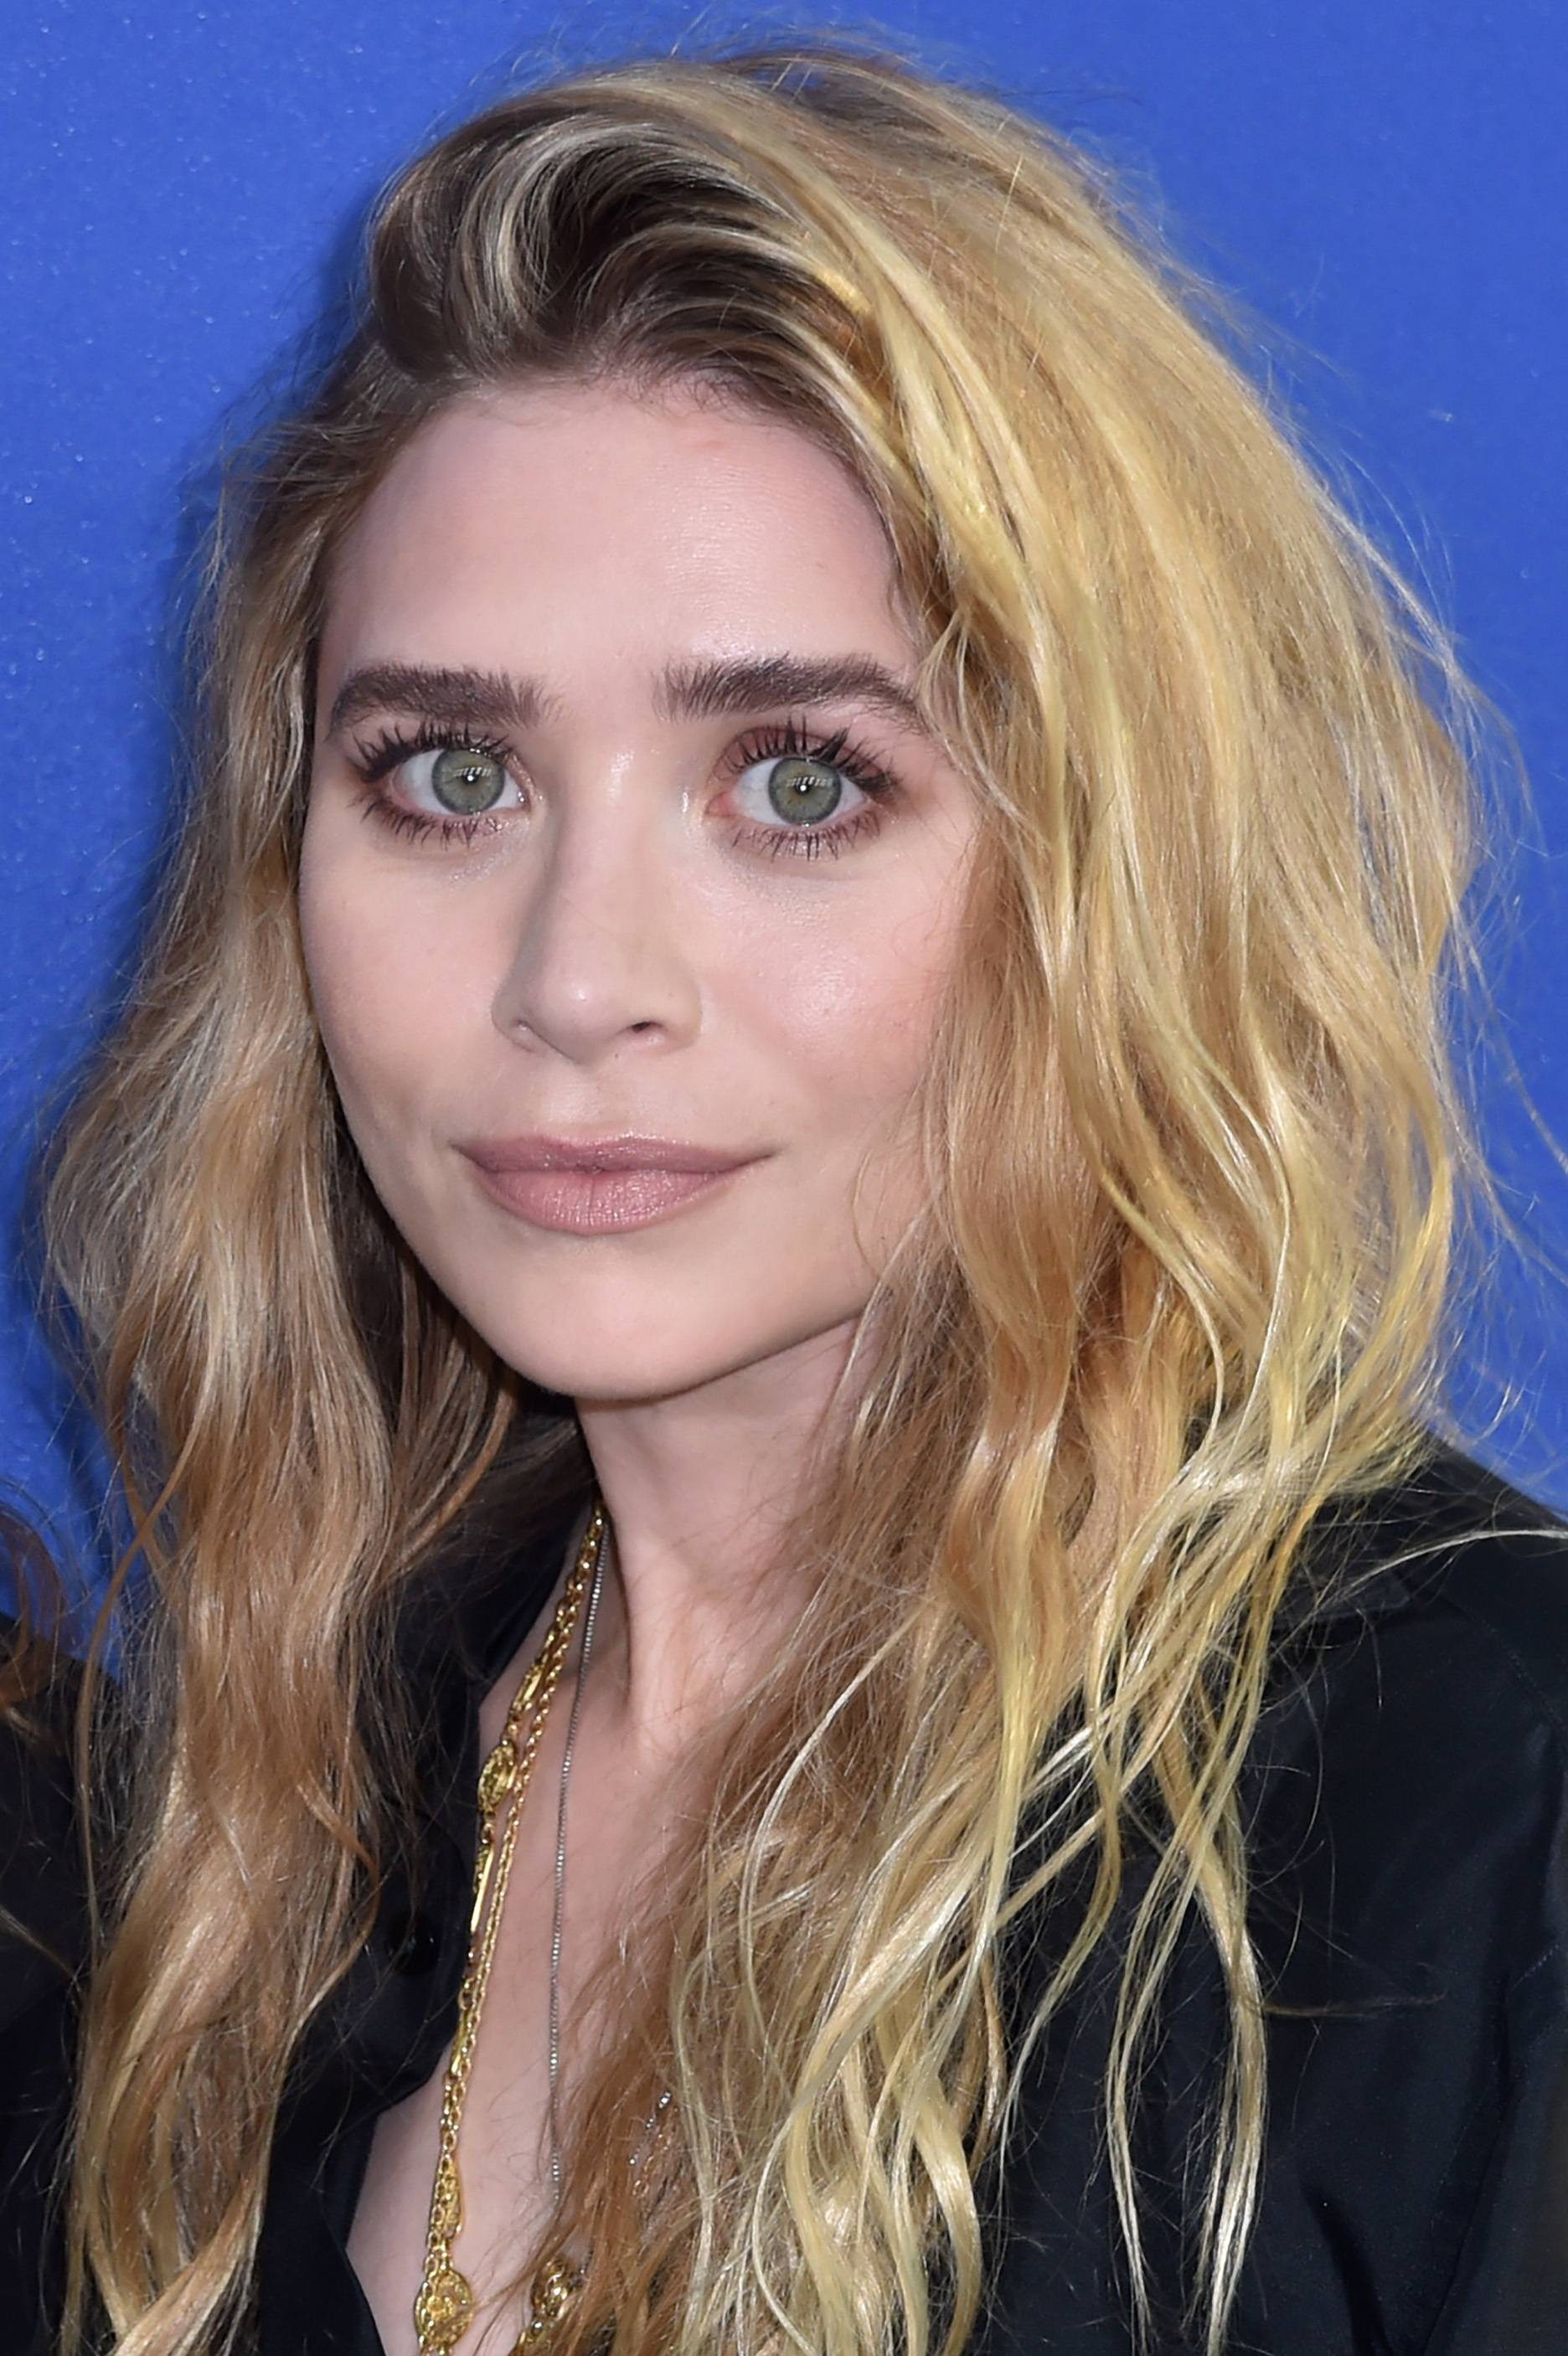 hairstyles for fine curly hair: ashley olsen with long wavy blonde beach hair pushed over to one side